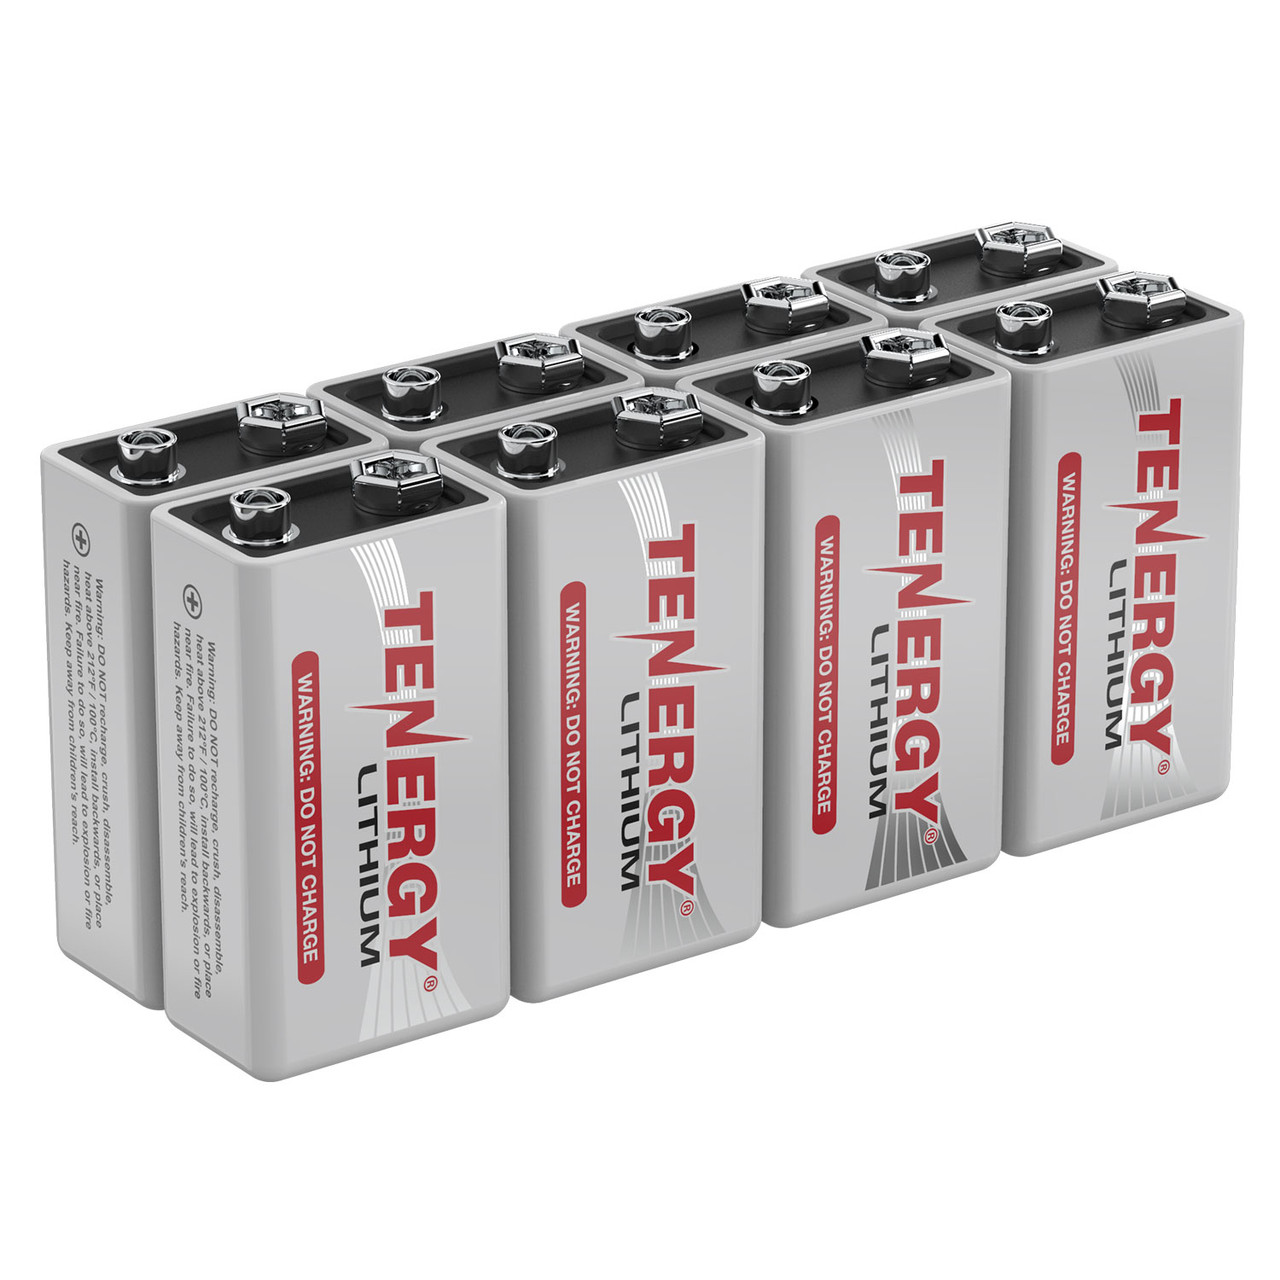 8-Pack, Tenergy 9V Lithium Battery, 1200mah with 10 years shelf life - [Non-Rechargeable]